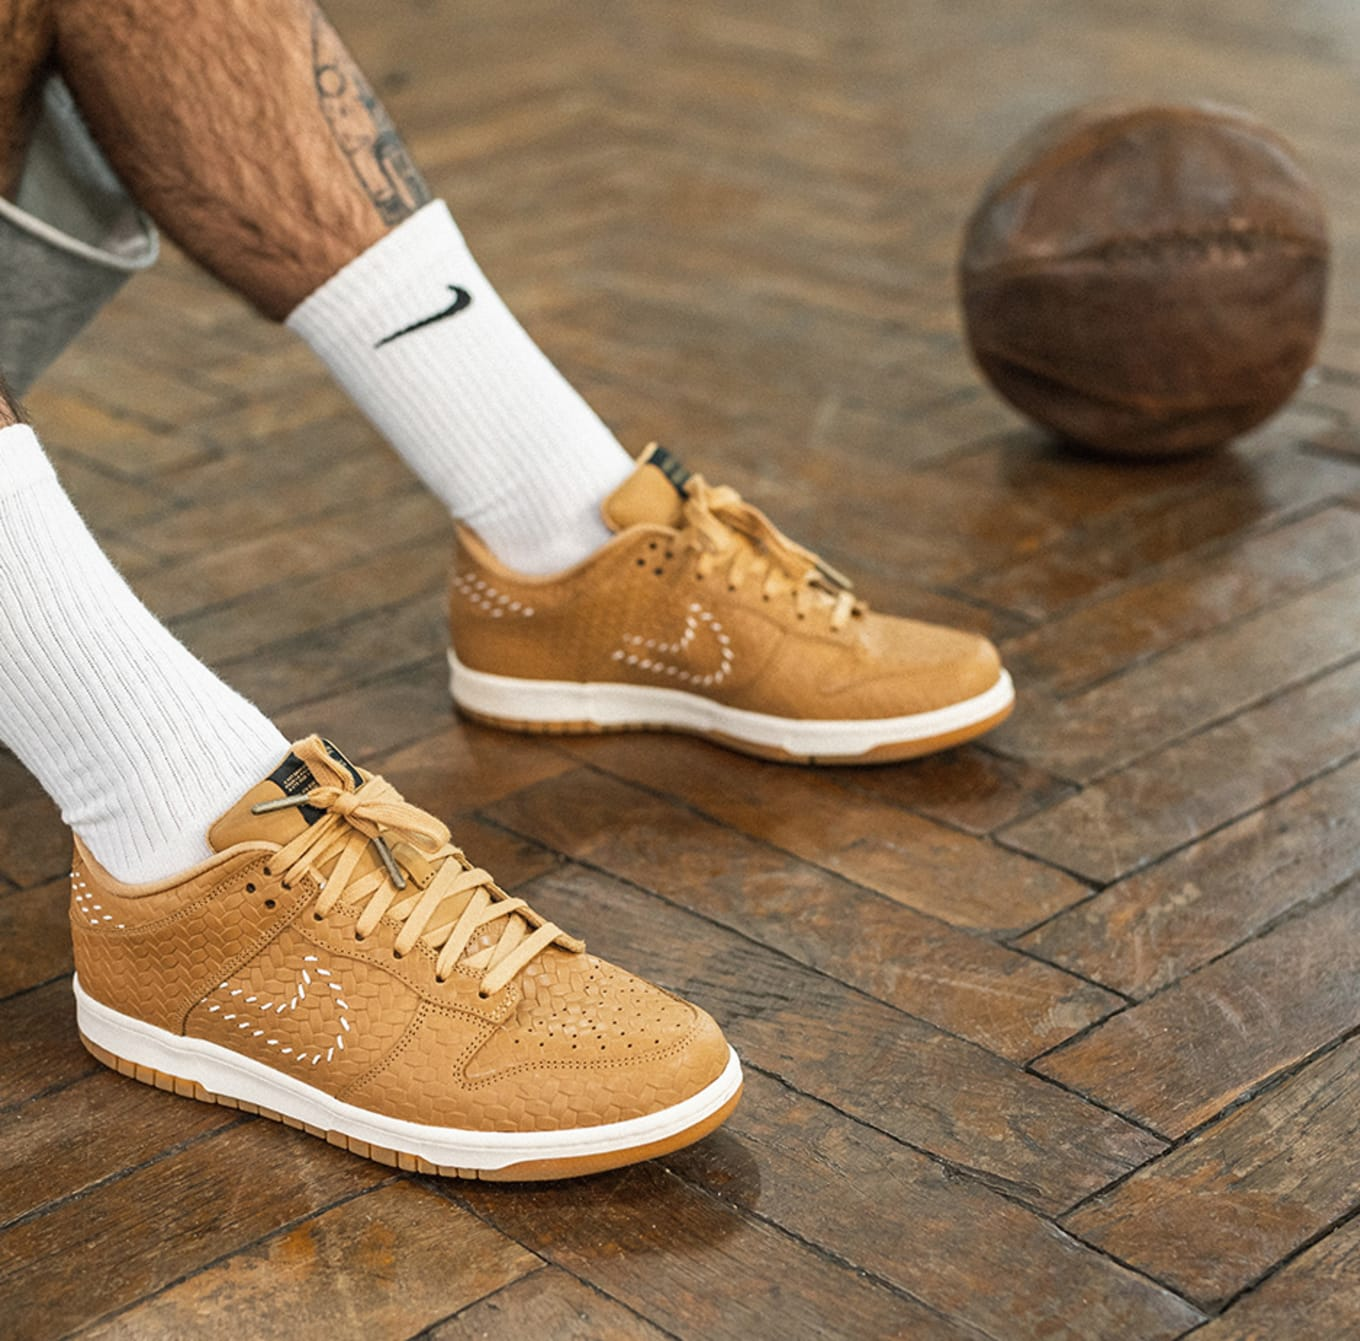 8f25d5913409 Nike Made Exclusive Sneakers for the World s Oldest Basketball Court